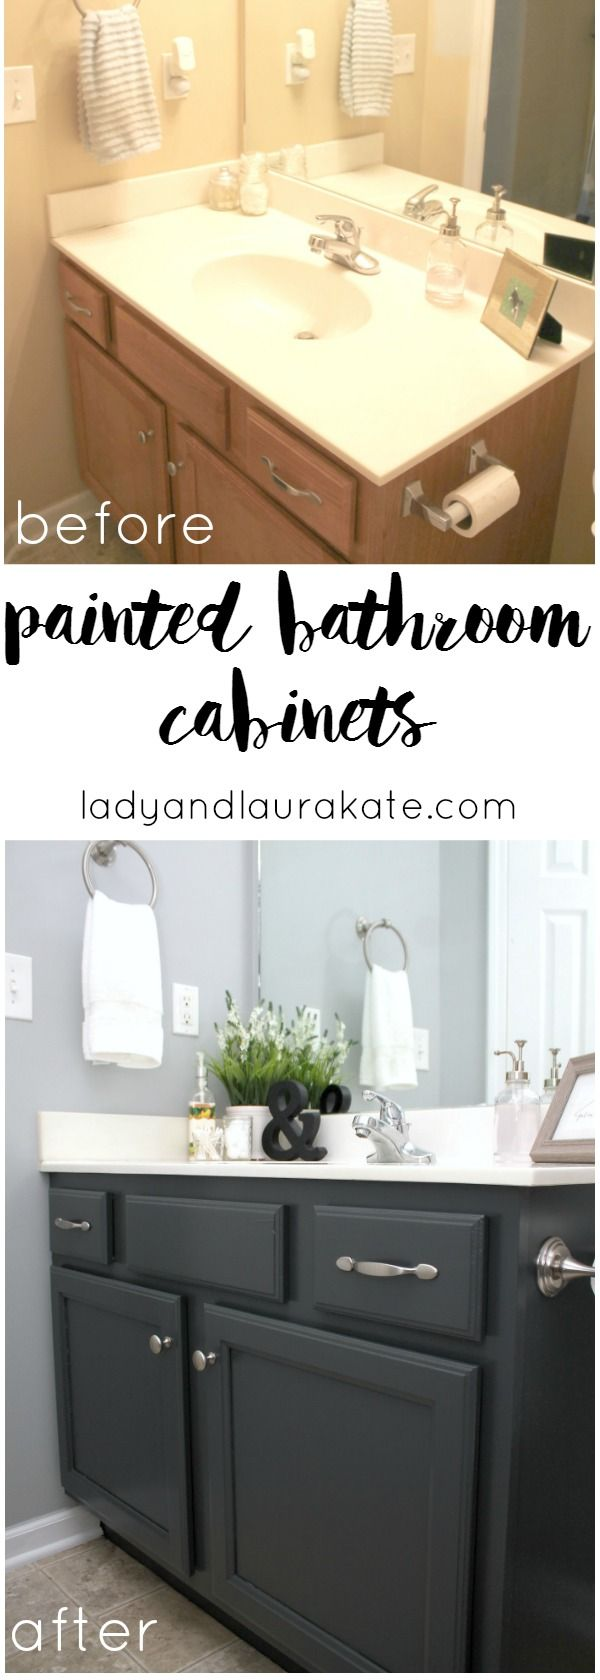 How to choose the lighting scheme for your bathroom - Easy Way To Paint Your Bathroom Cabinets